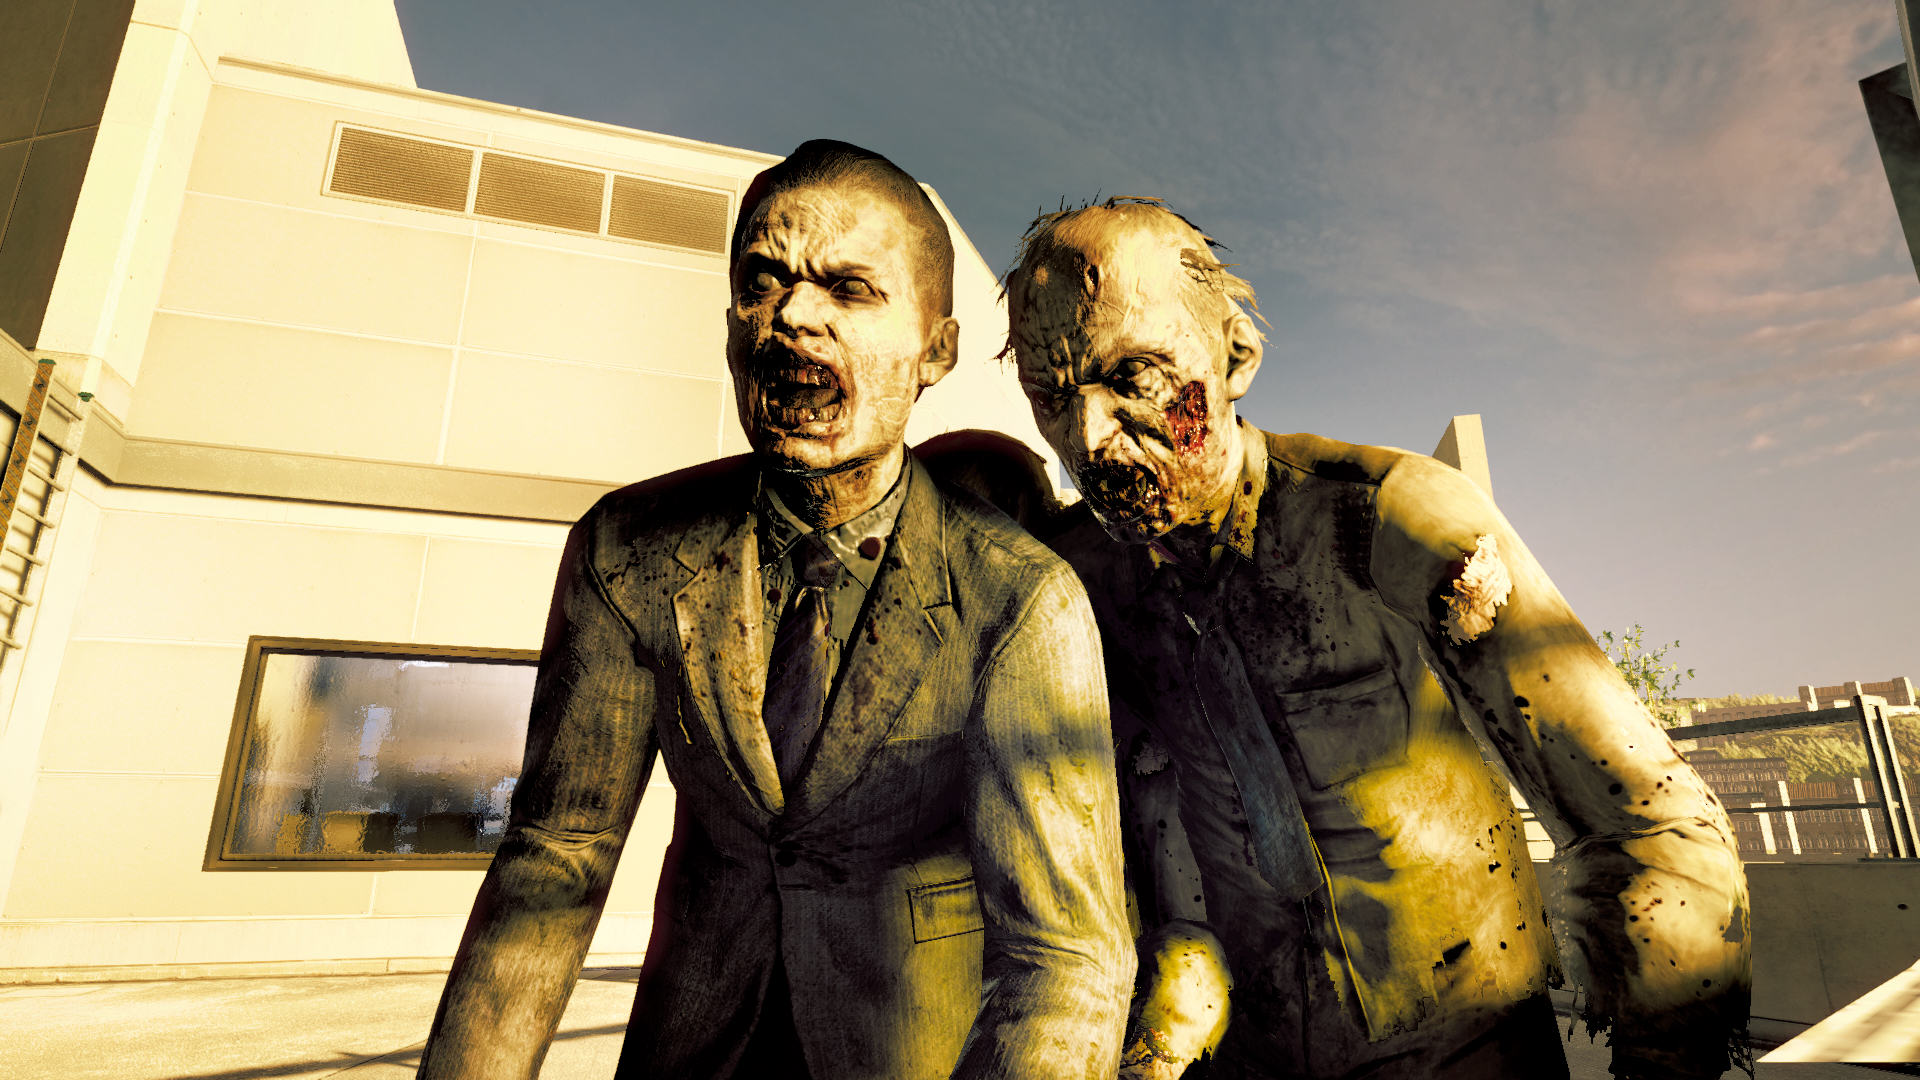 Zombie 1453737472 Resident Evil Umbrella Corps Gets A Release Date And New Details